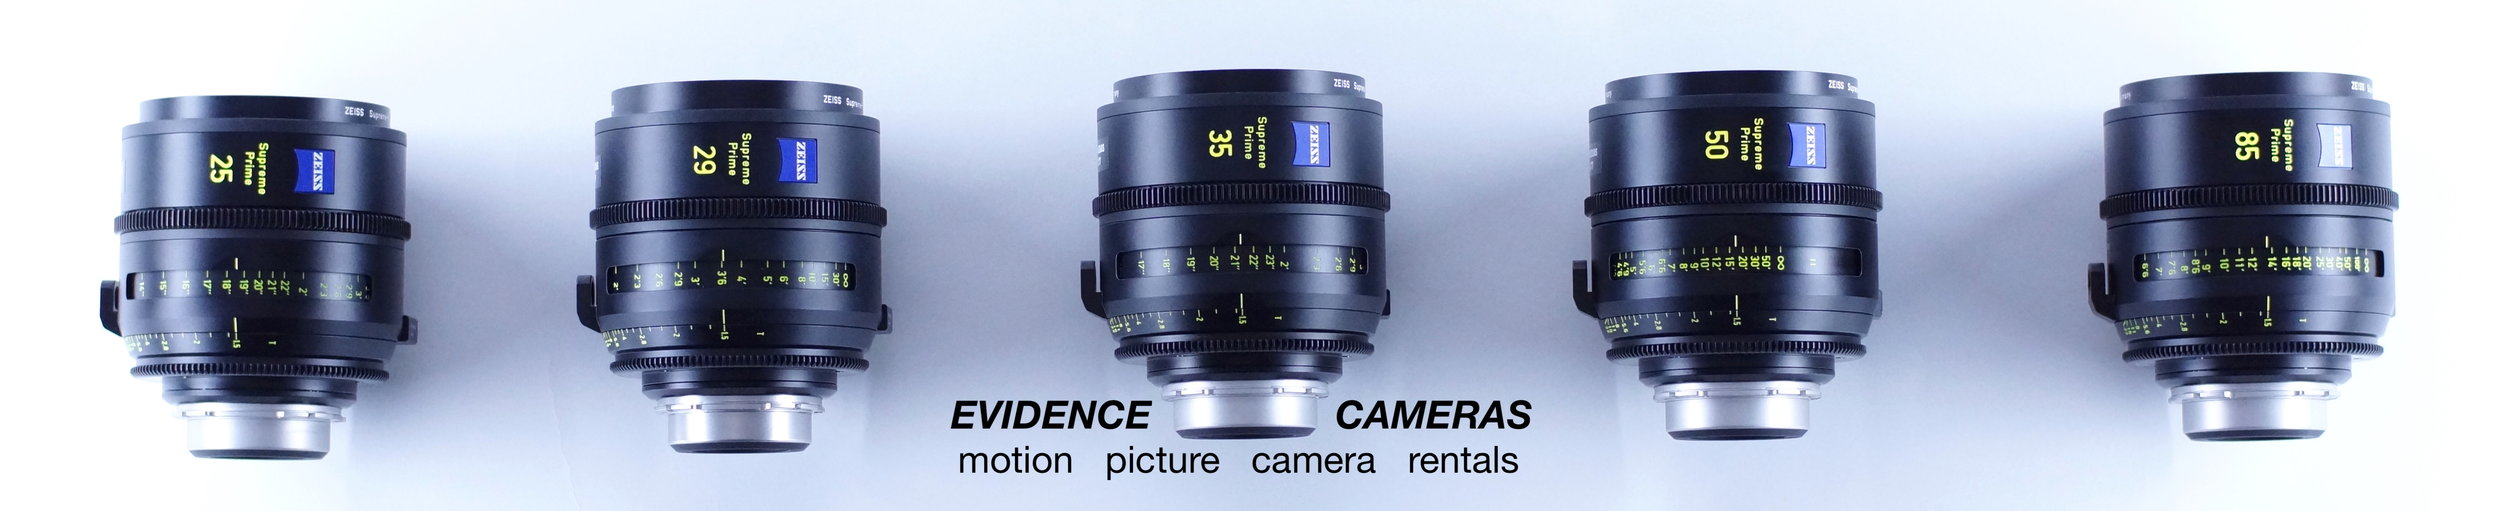 ZEISS SUPREME T1.5 Full-Frame PL (SET OF 5 currently available)   25mm T1.5, 35mm T1.4, 29MM T1.5, 50mm T1.5, 85mm T1.5